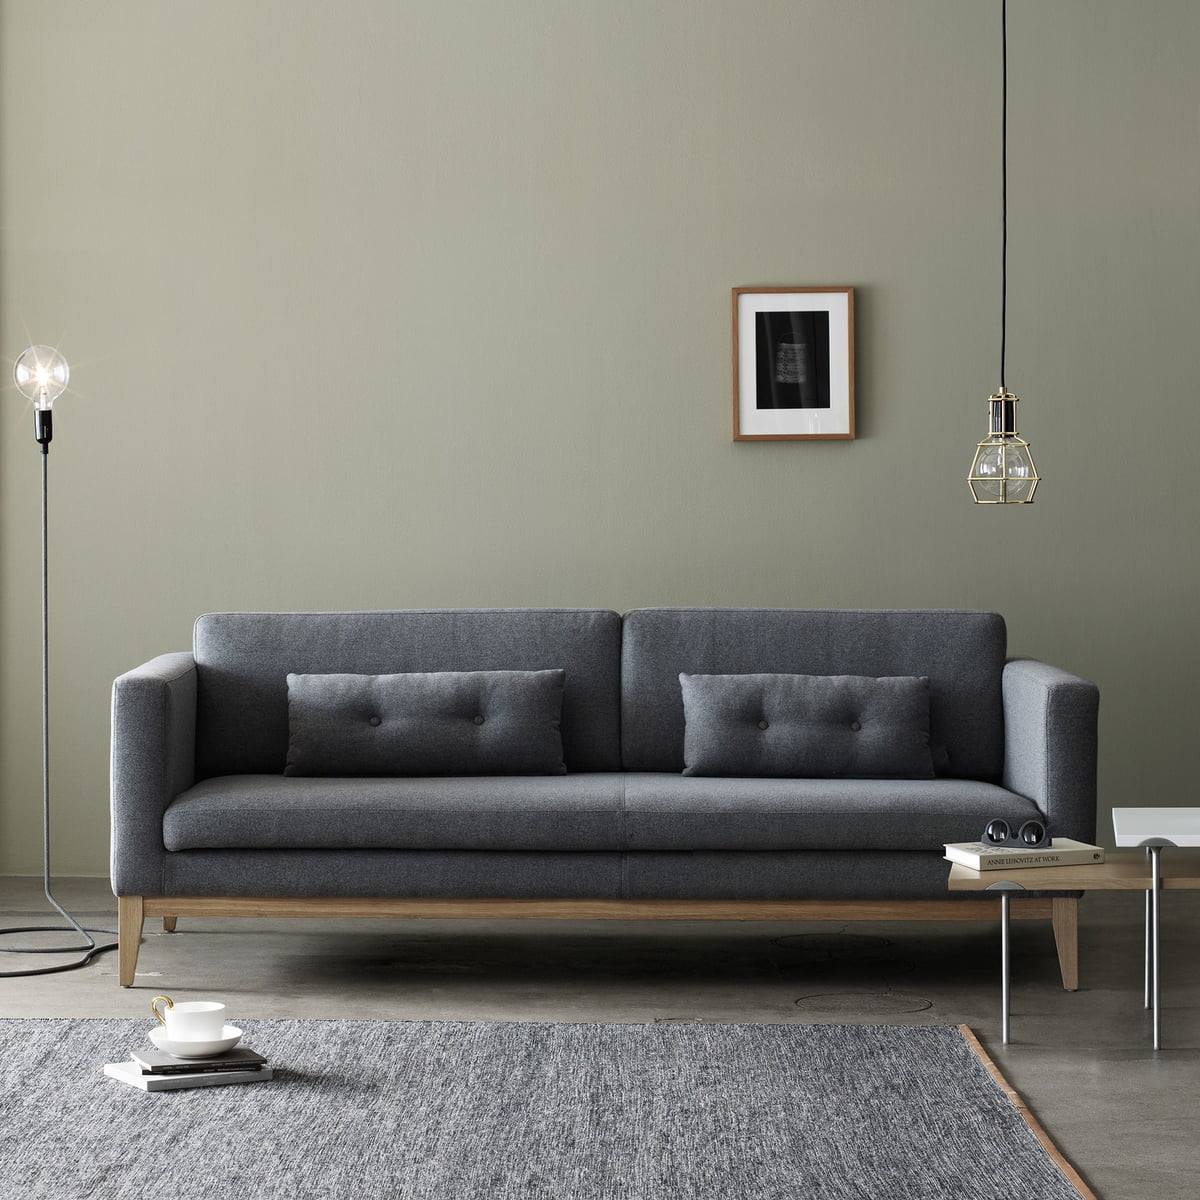 Superbe The Day Sofa By Design House Stockholm Studio